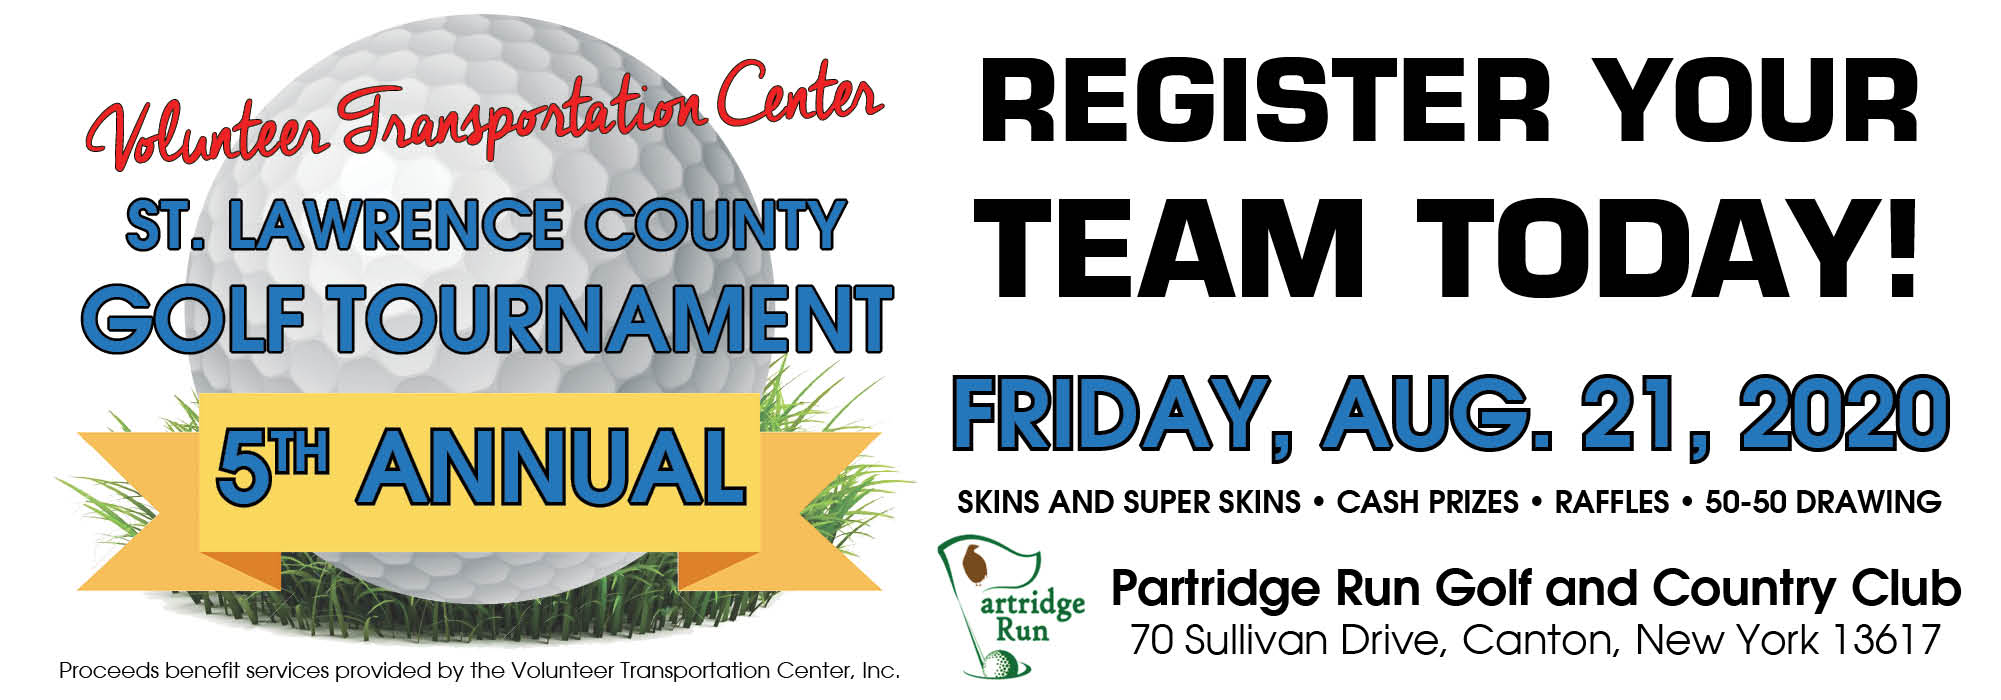 VTC's St. Lawrence County Golf Tournament to Return